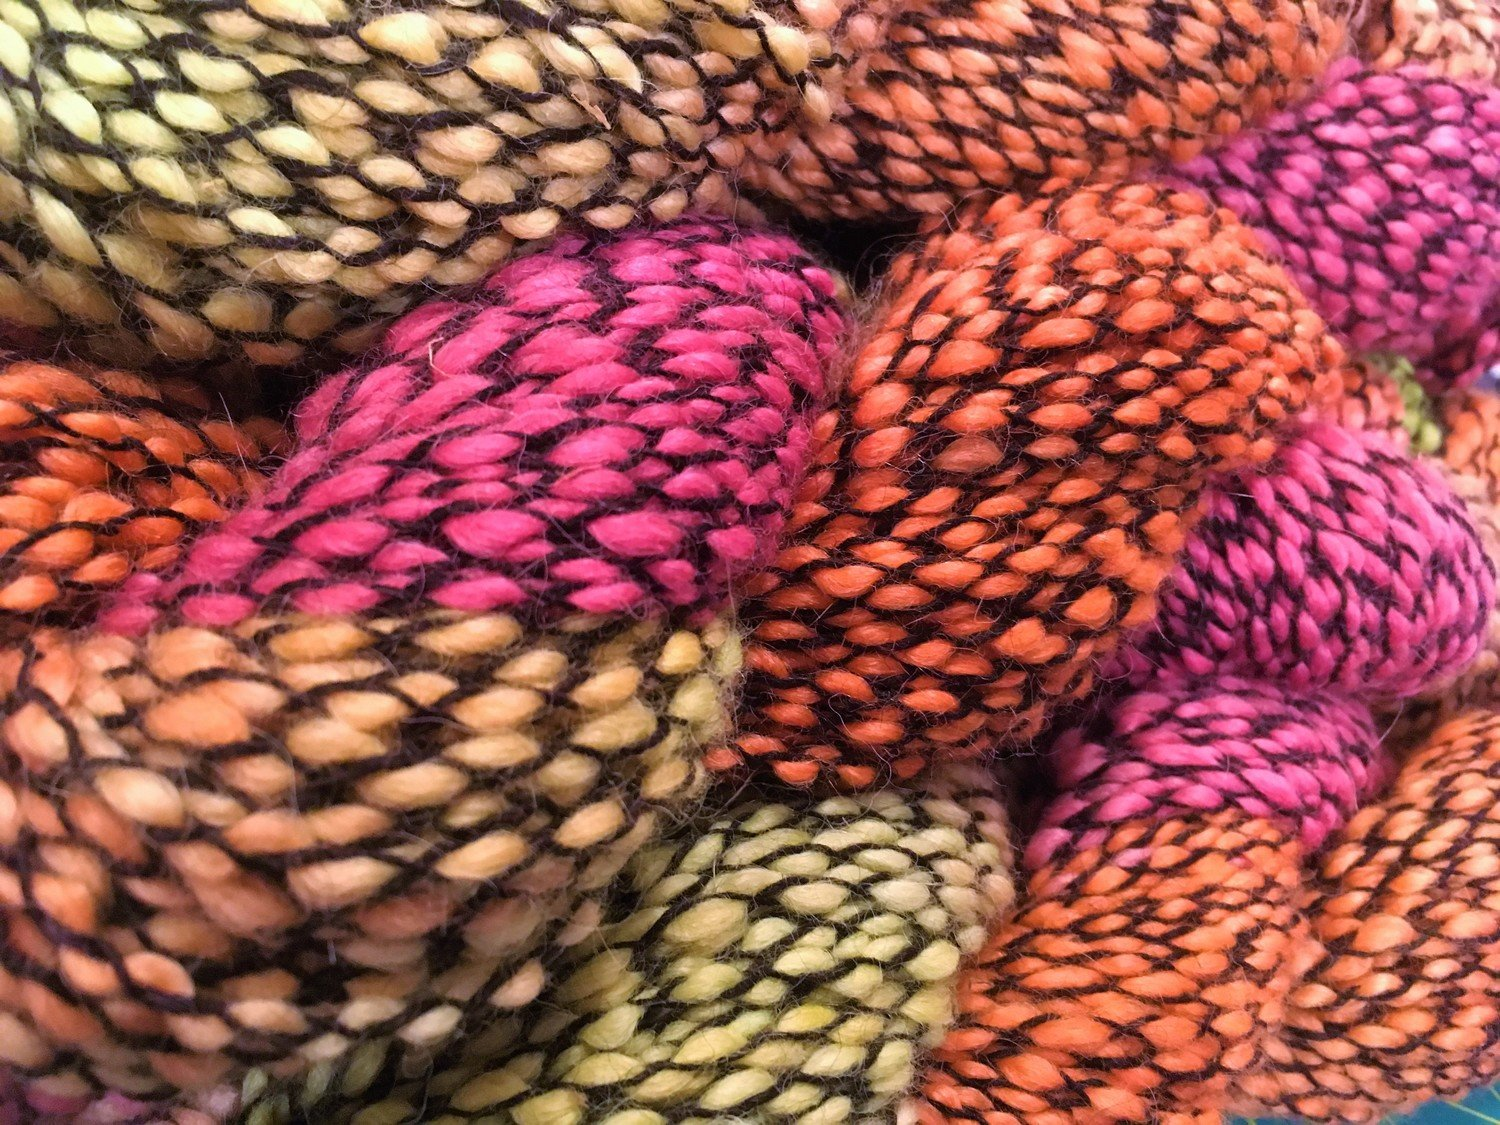 Breezy Hill Cottage-Milled, Corded Yarn - Sunset